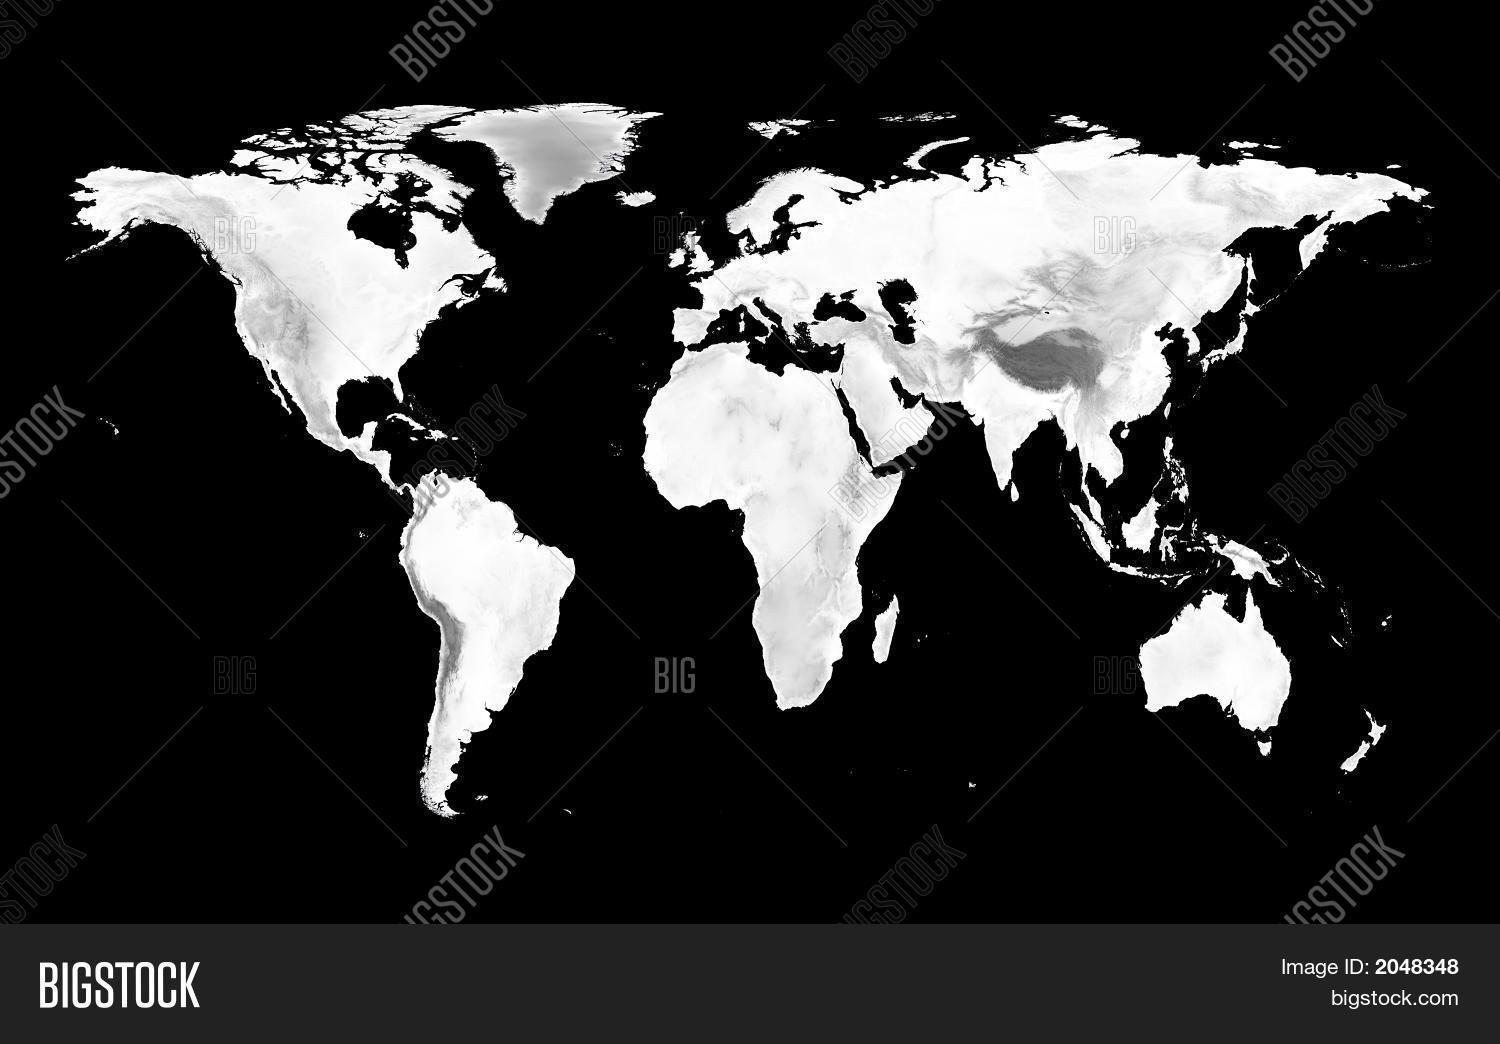 World map grayscale image photo free trial bigstock world map with grayscale elevation gumiabroncs Gallery